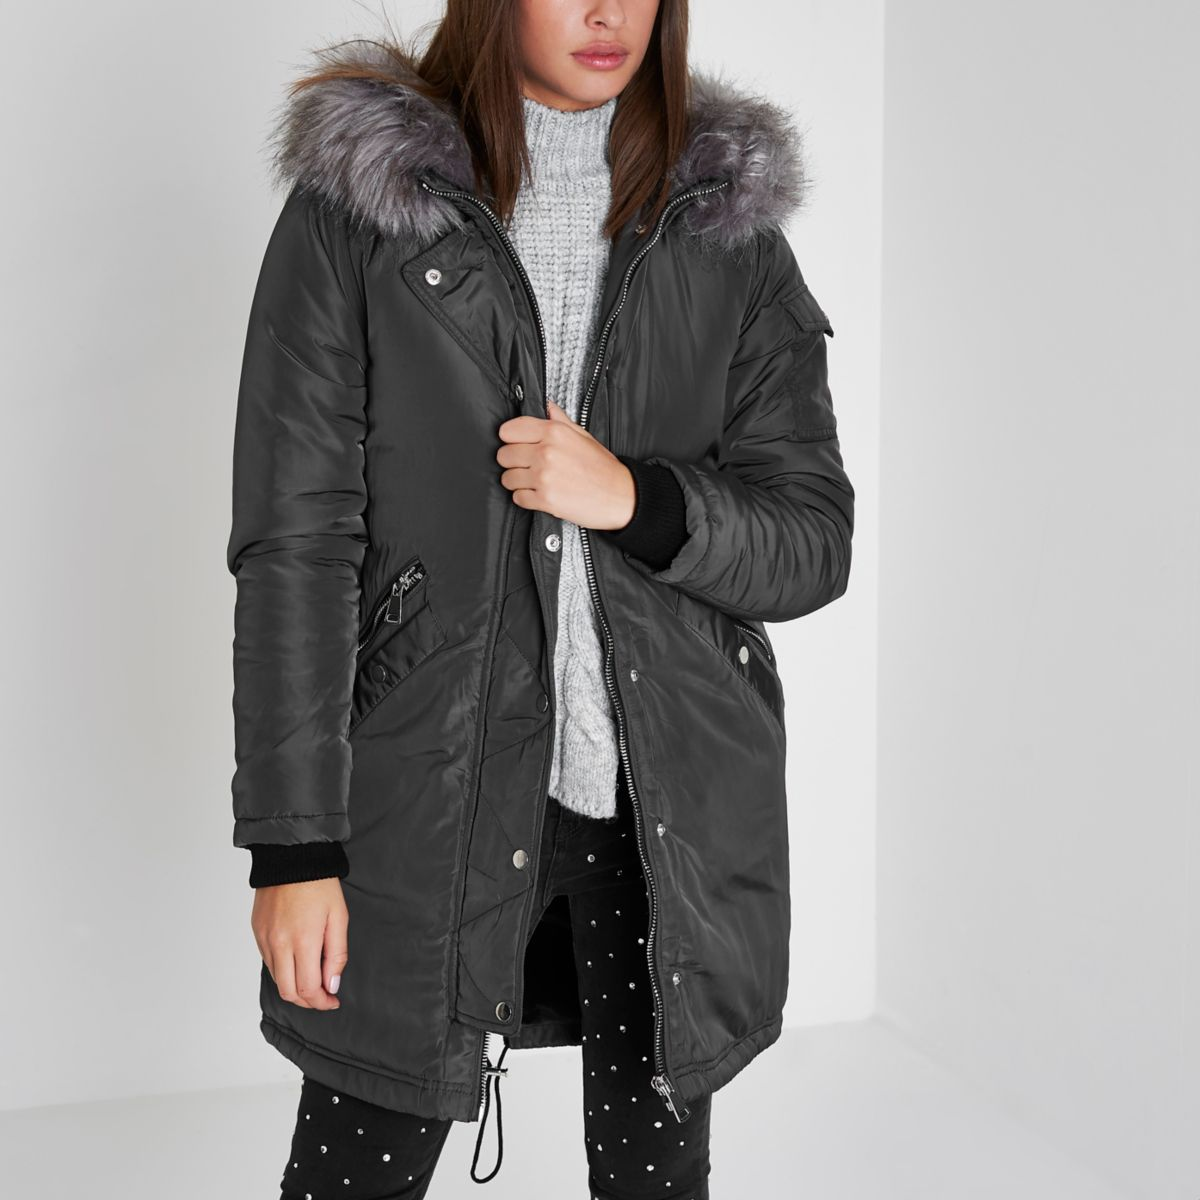 Canada Goose Inc. is a Canadian manufacturer of winter clothing. Canada Goose extreme weather outerwear made in Canada since Parkas, coats, shells, jackets, bibs, .